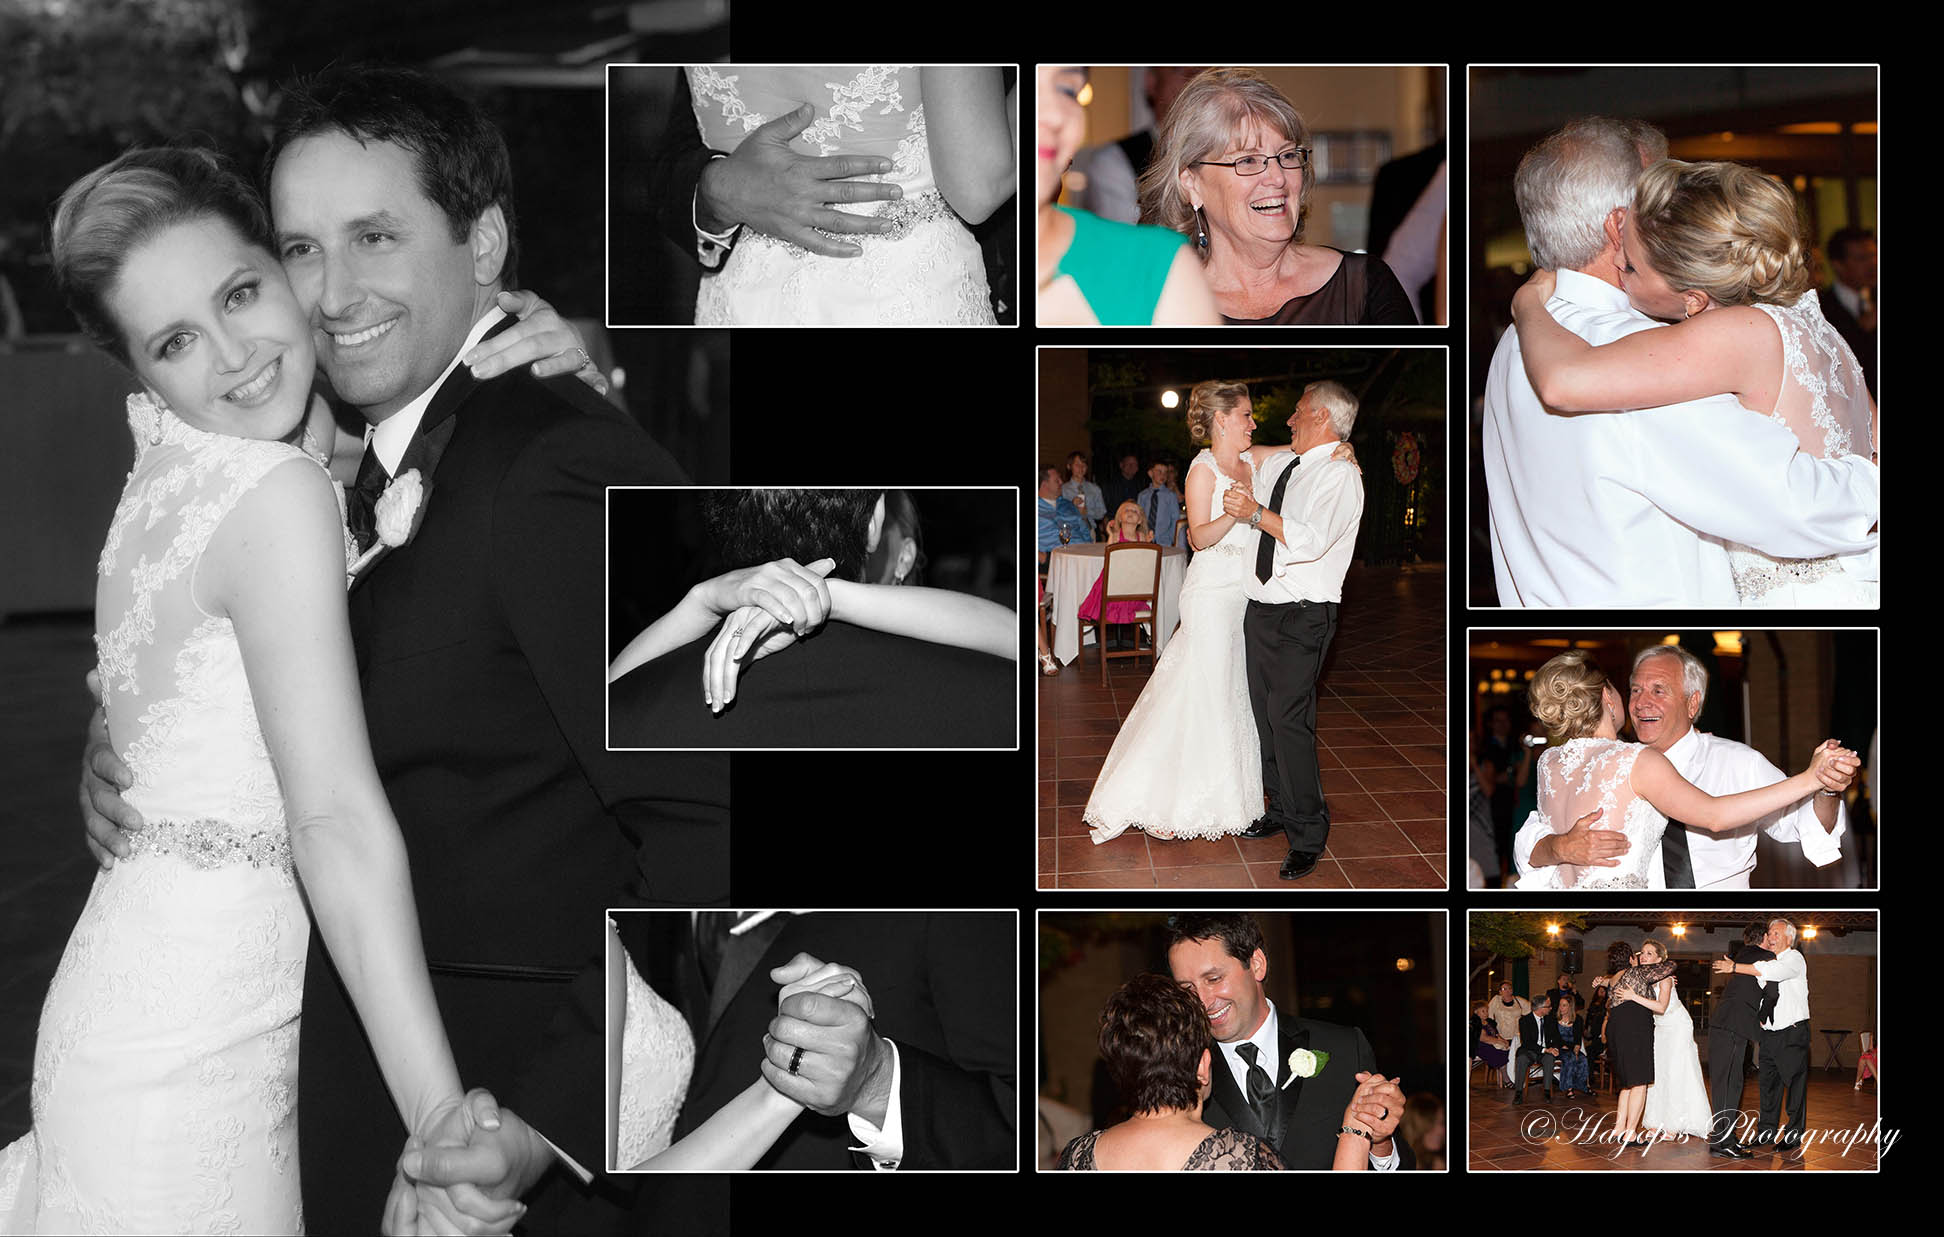 composite of candid photo taken during the parents dance